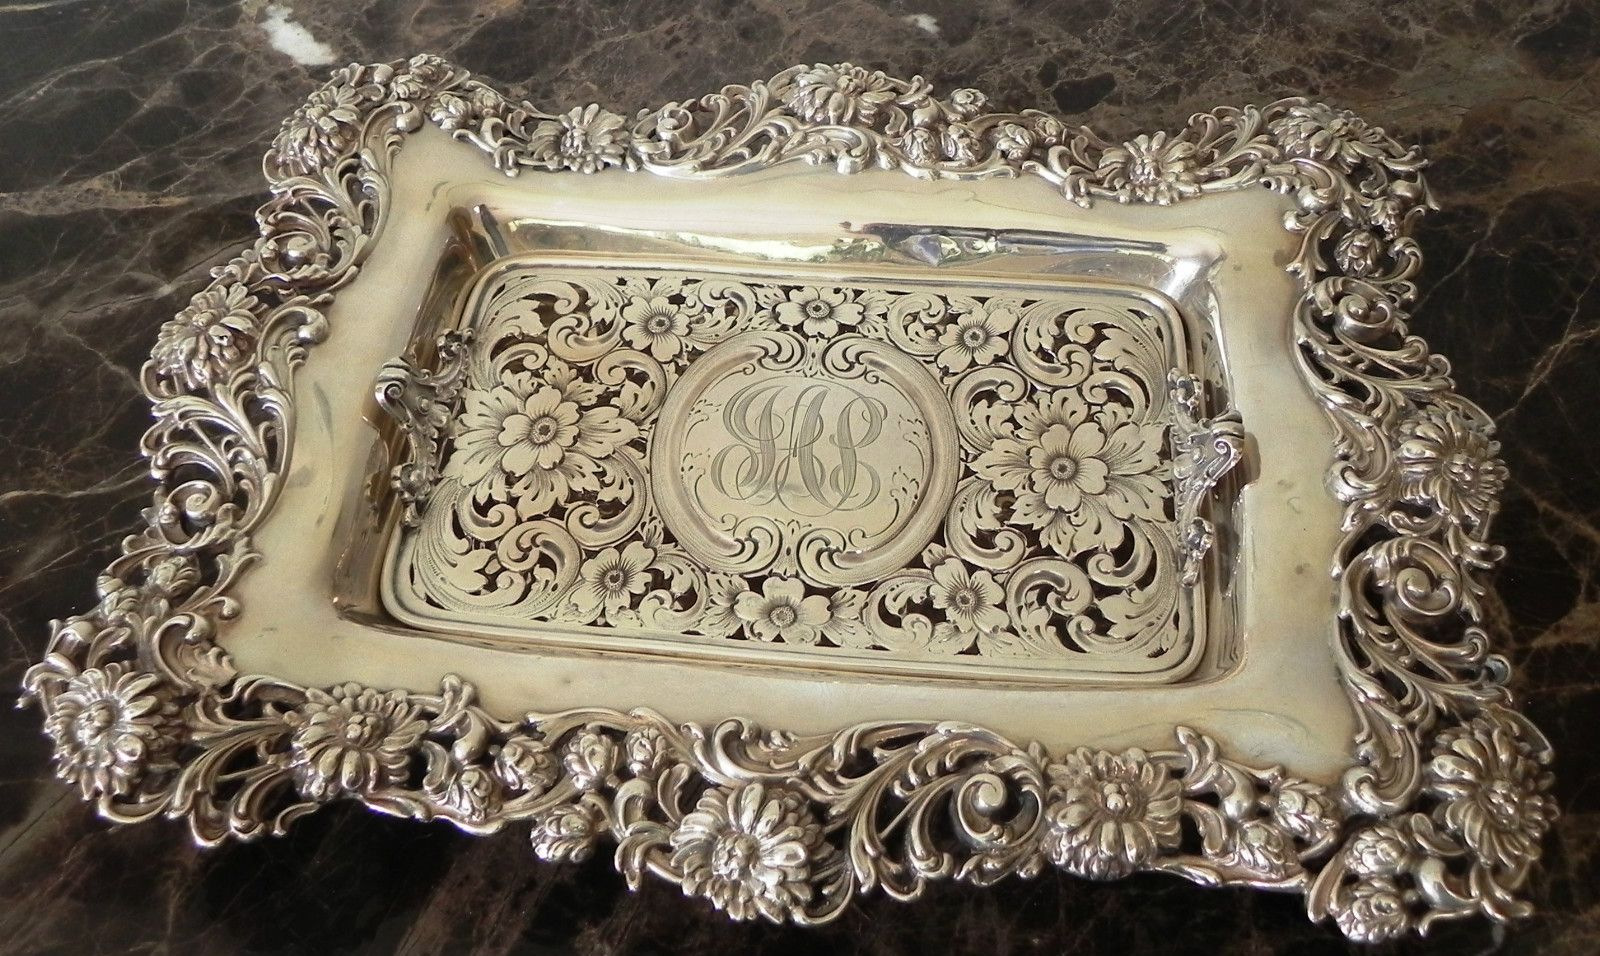 Mauser Mfg. Co. sterling silver footed asparagus tray with pierced liner, c1890 (emmclo)